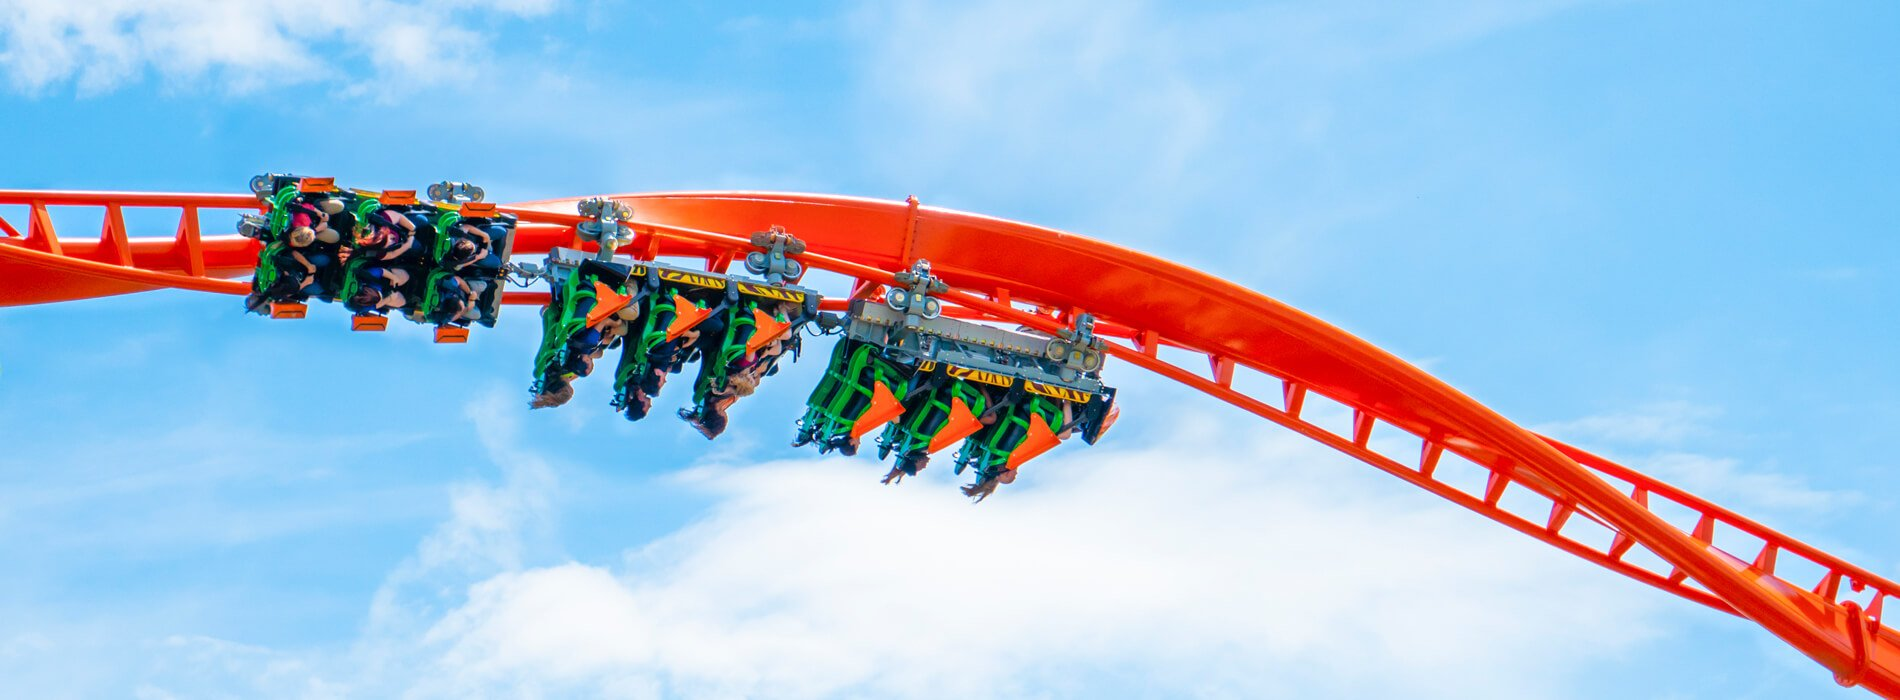 An orange and black roller coaster called Tigris, located at Busch Gardens Tampa Bay, located in Florida